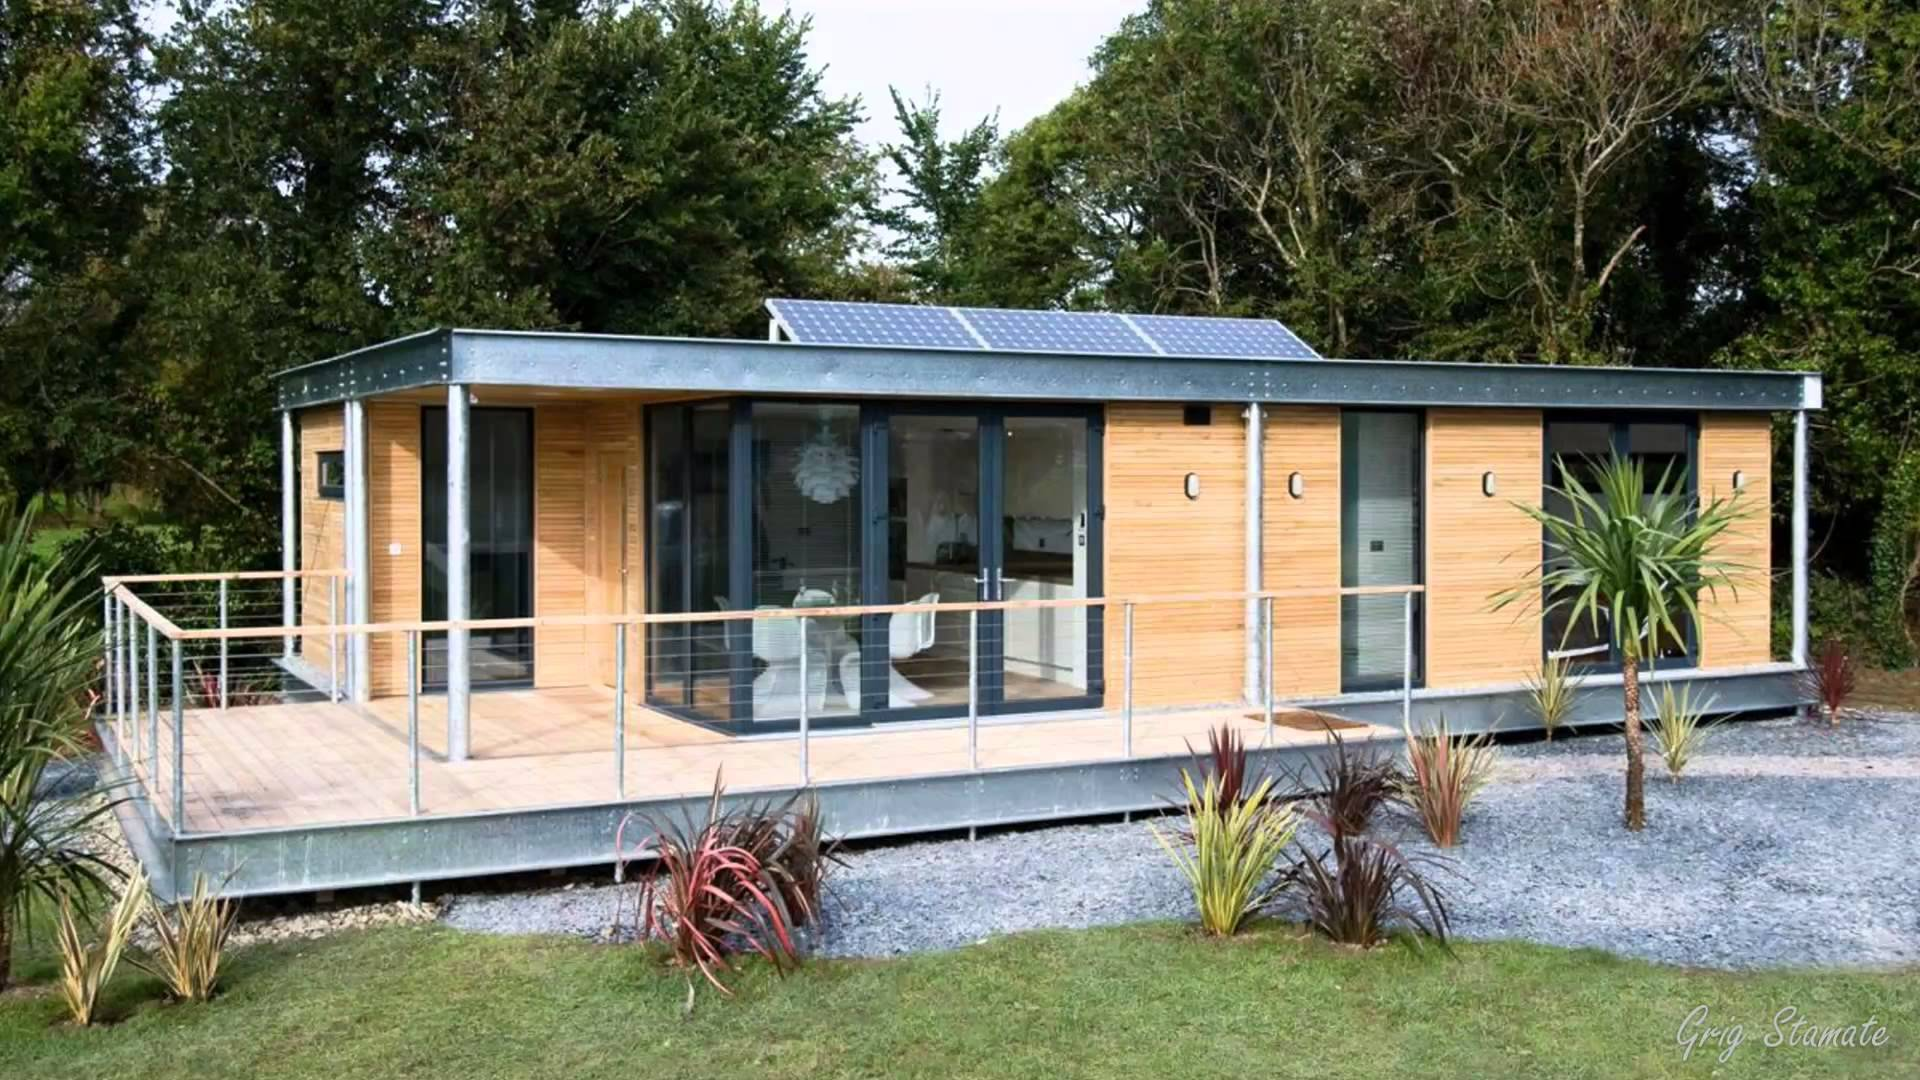 Magnificent Modern Contemporary Prefab Homes, Modular Houses - YouTube